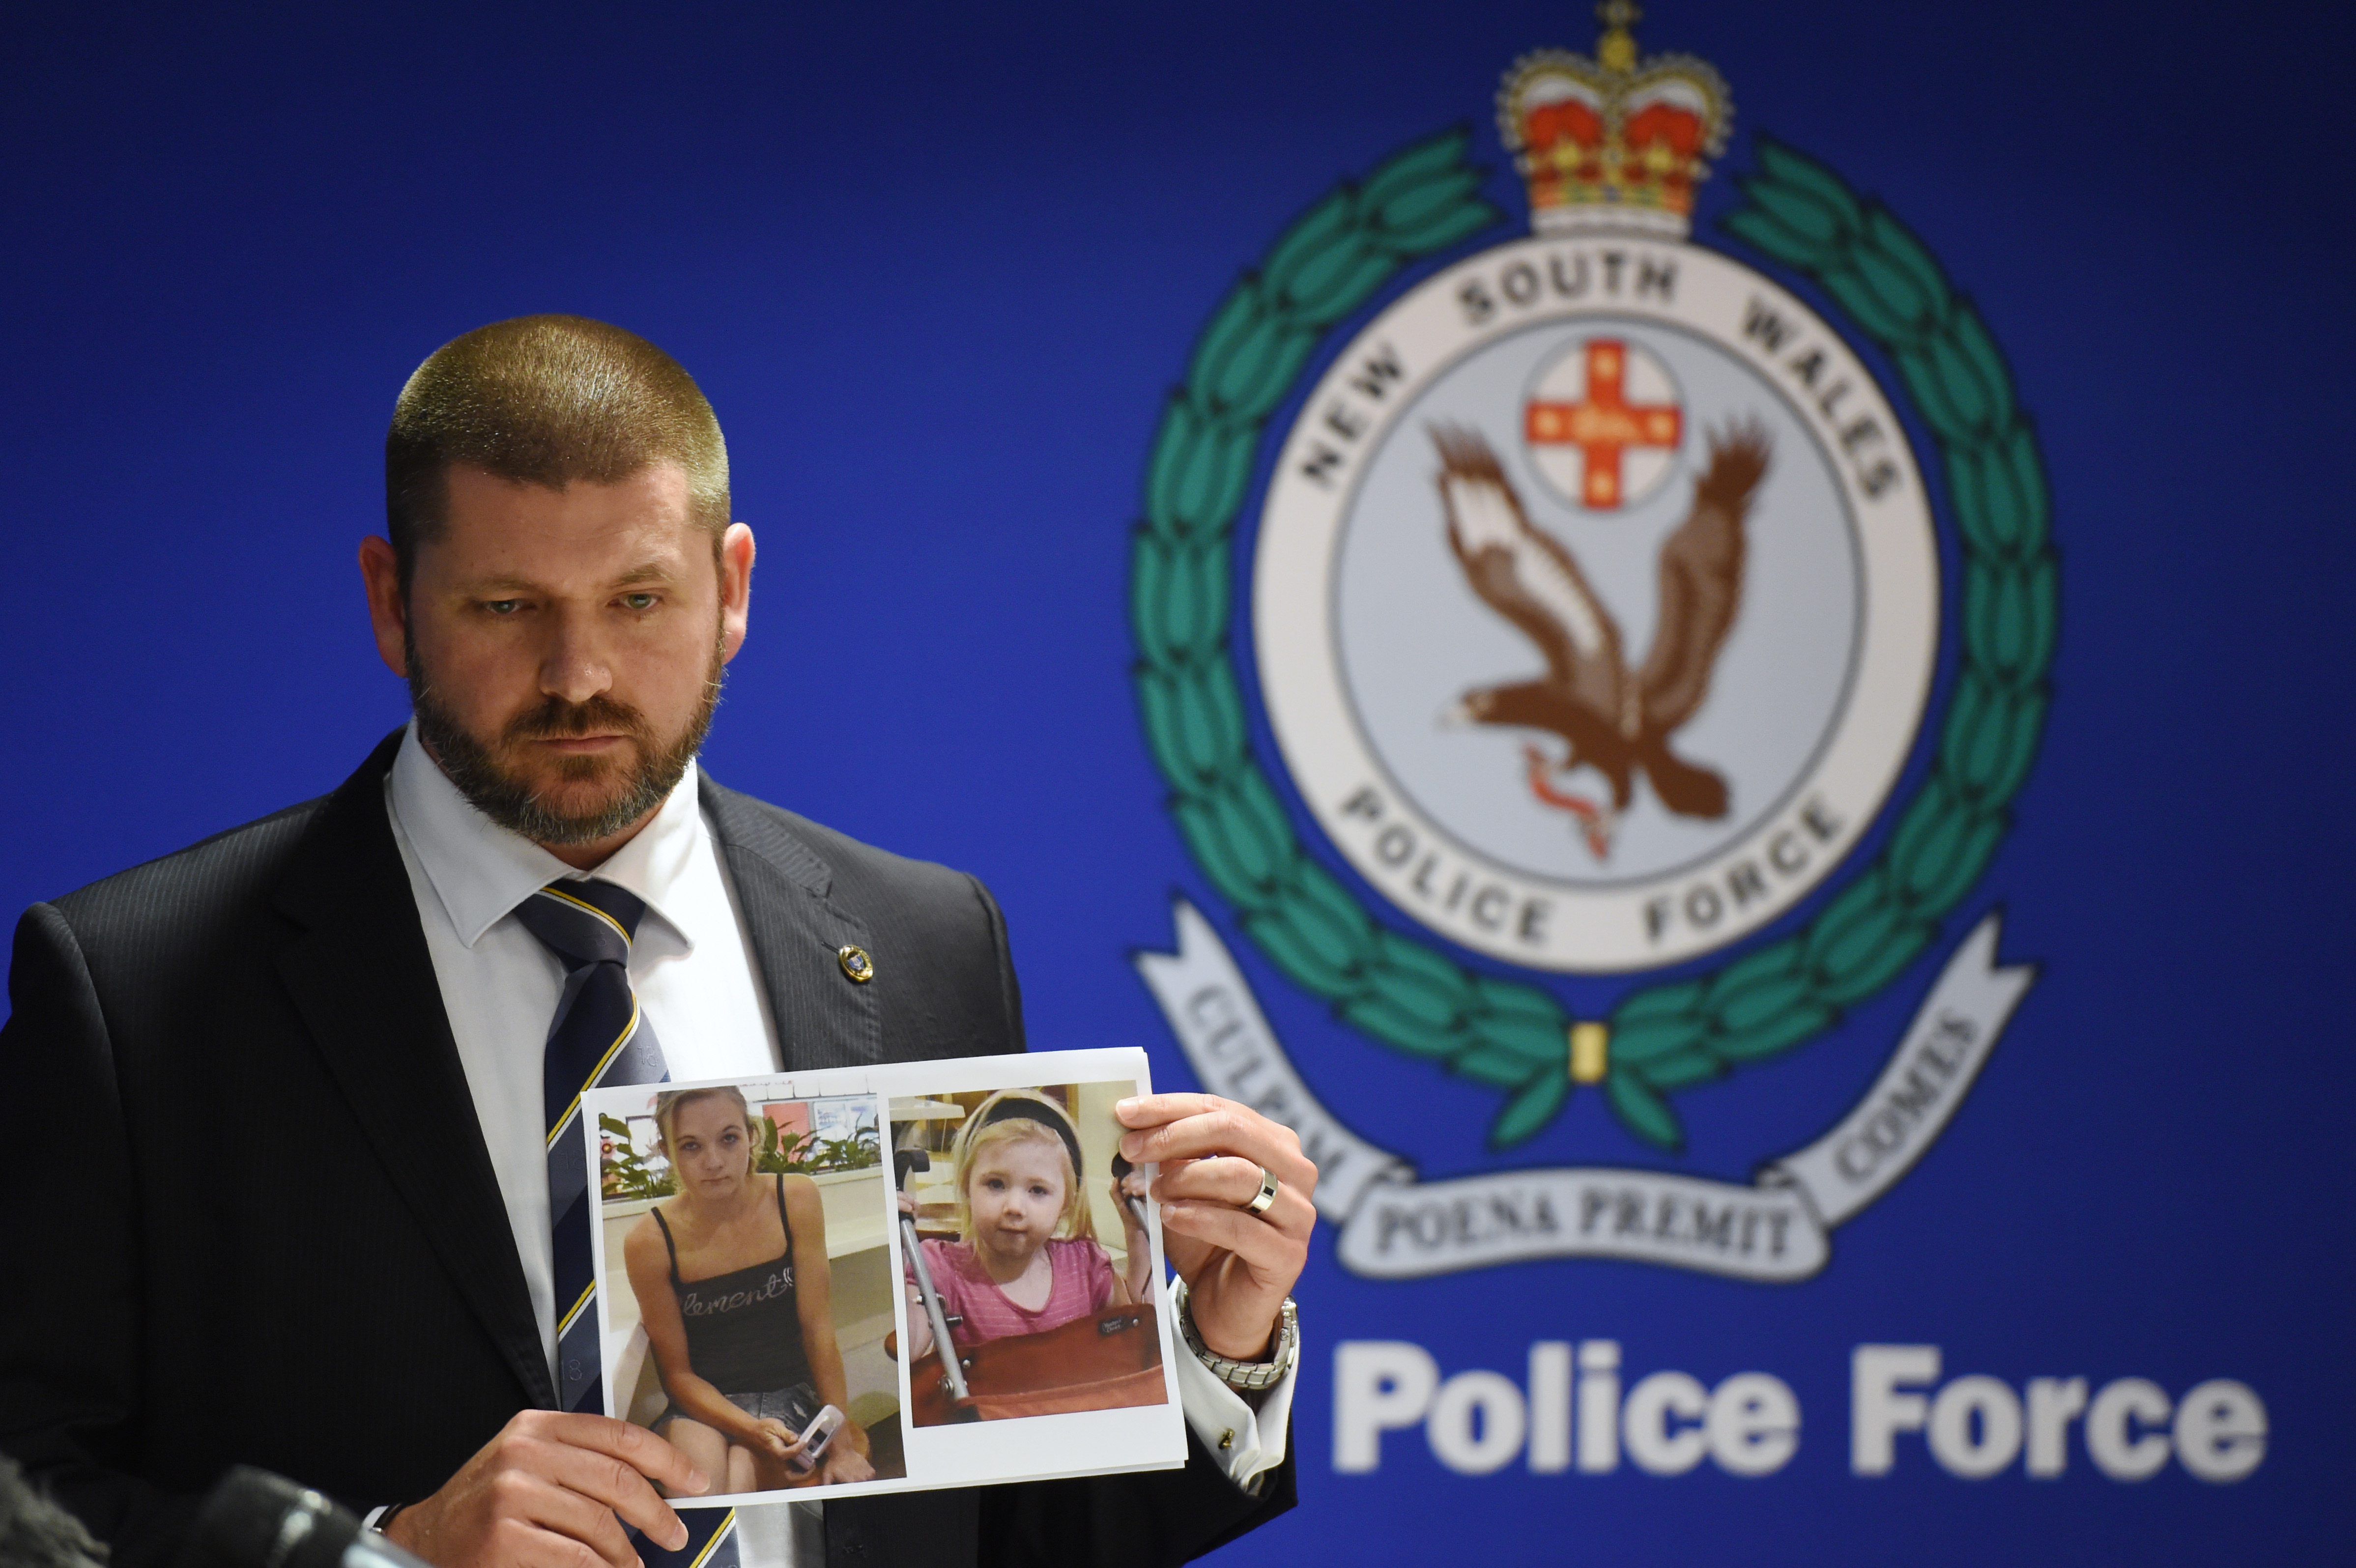 Police Detective Inspector Jason Dickinson holds up a photo of Karlie Jade Pearce-Stevenson and her daughter Khandalyce Kiara Pearce, during a press conference in Sydney, Wednesday, Oct. 21, 2015